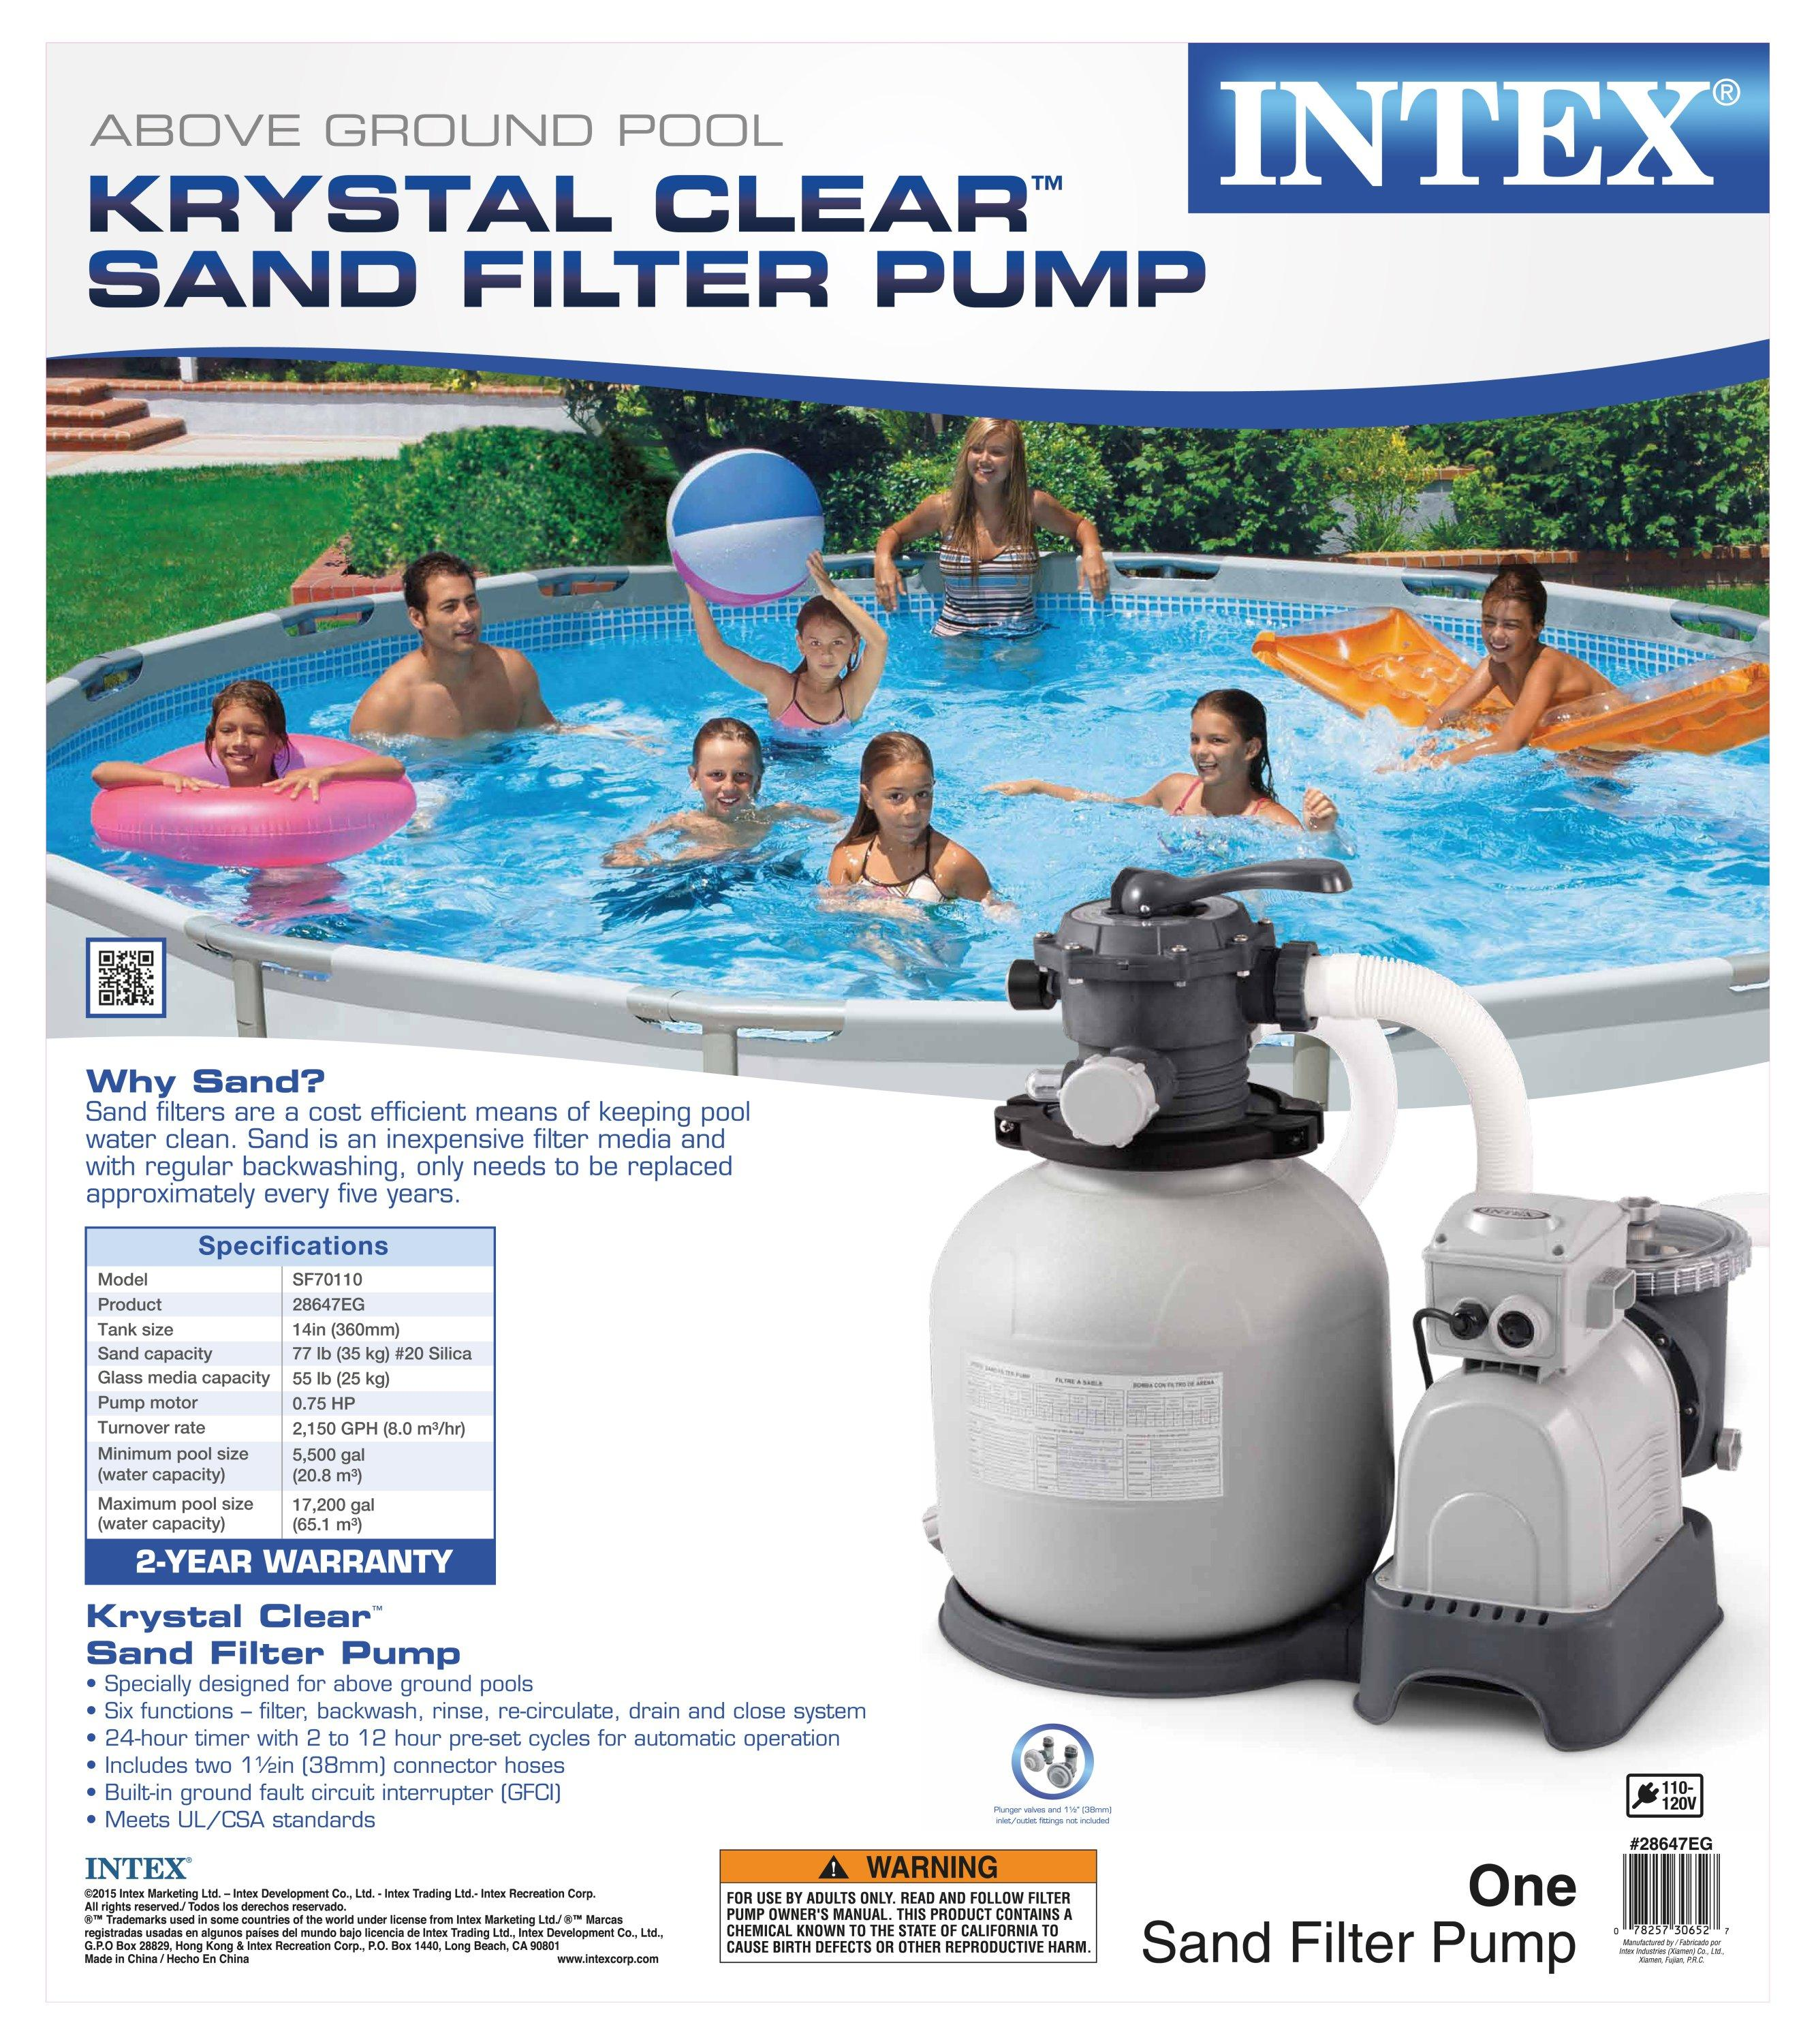 amazon com intex krystal clear sand filter pump for above ground view larger